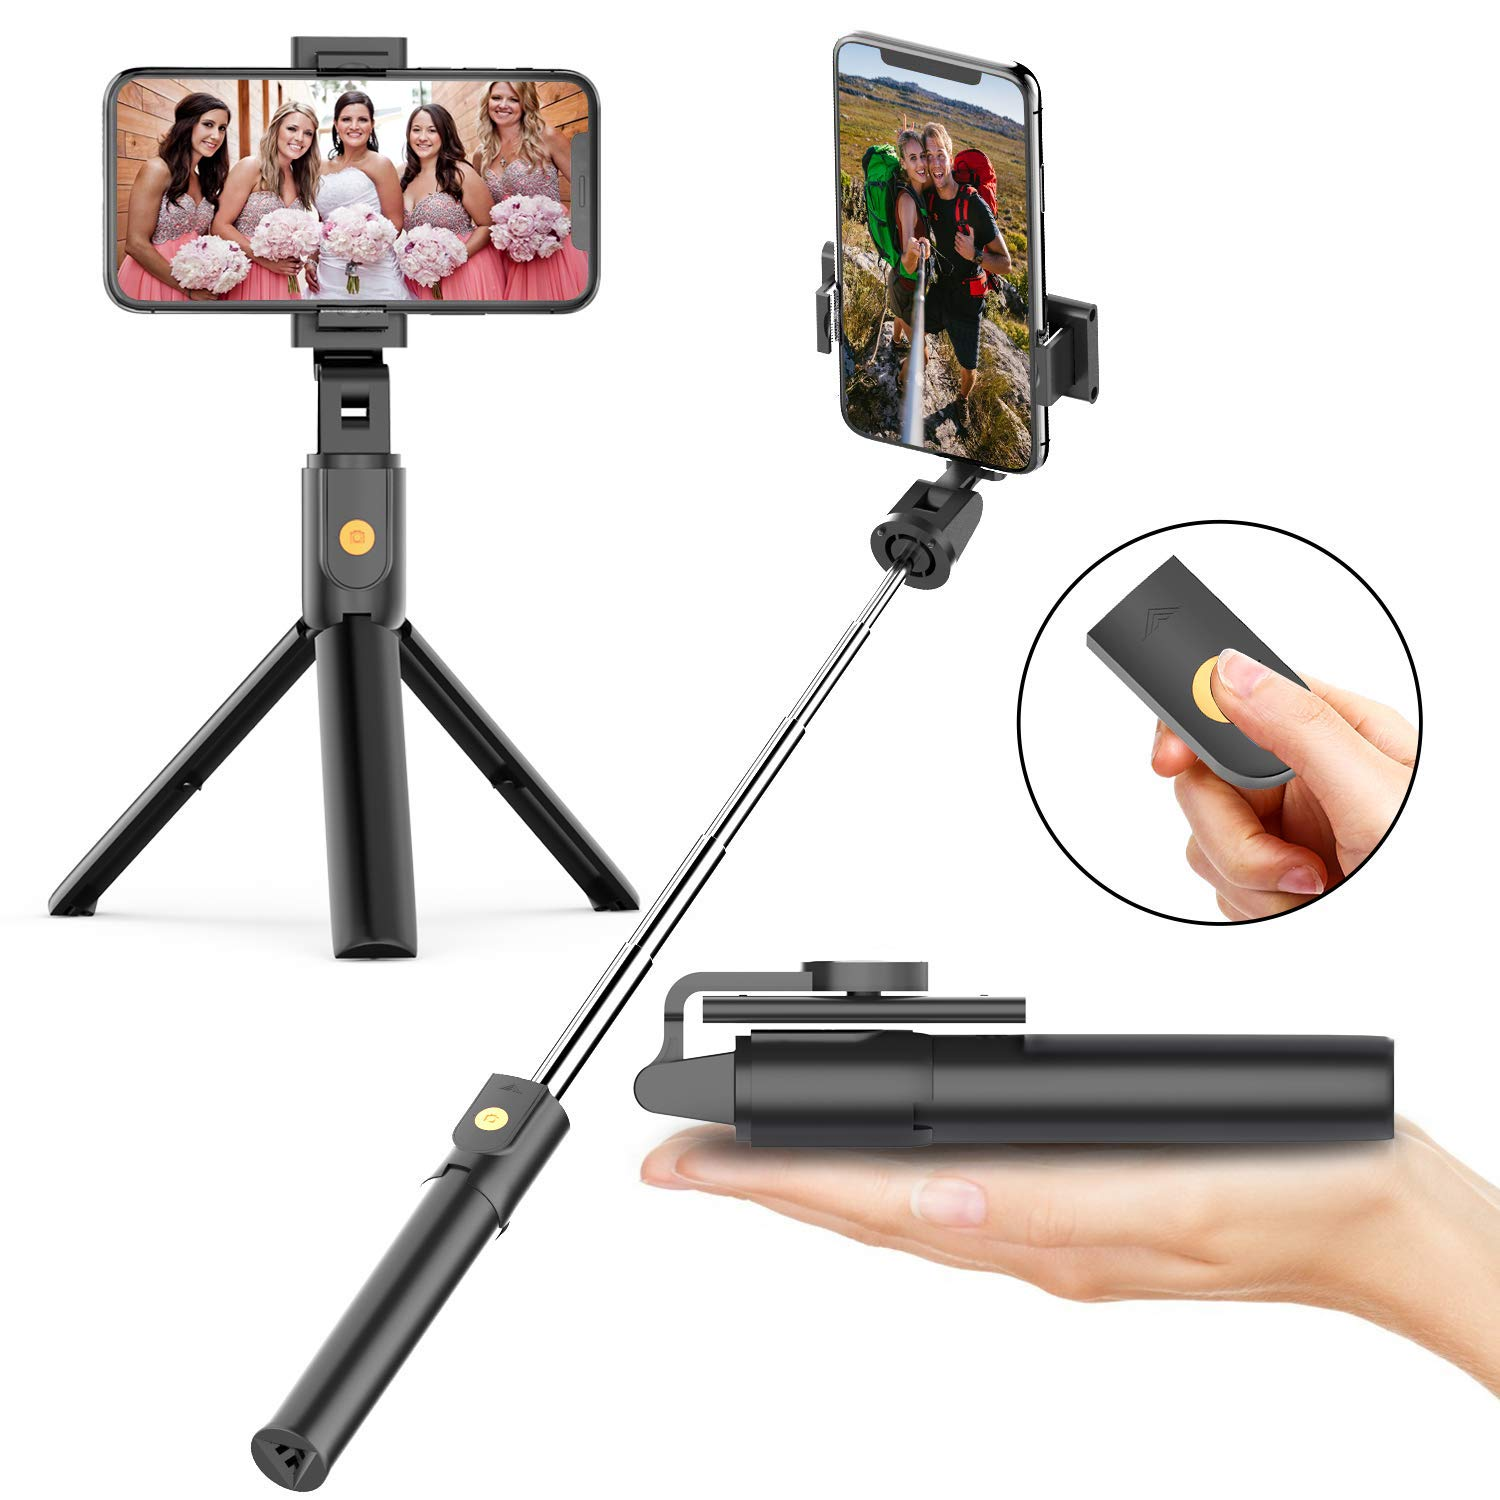 Selfie Stick Tripod with Bluetooth Remote by Danfer